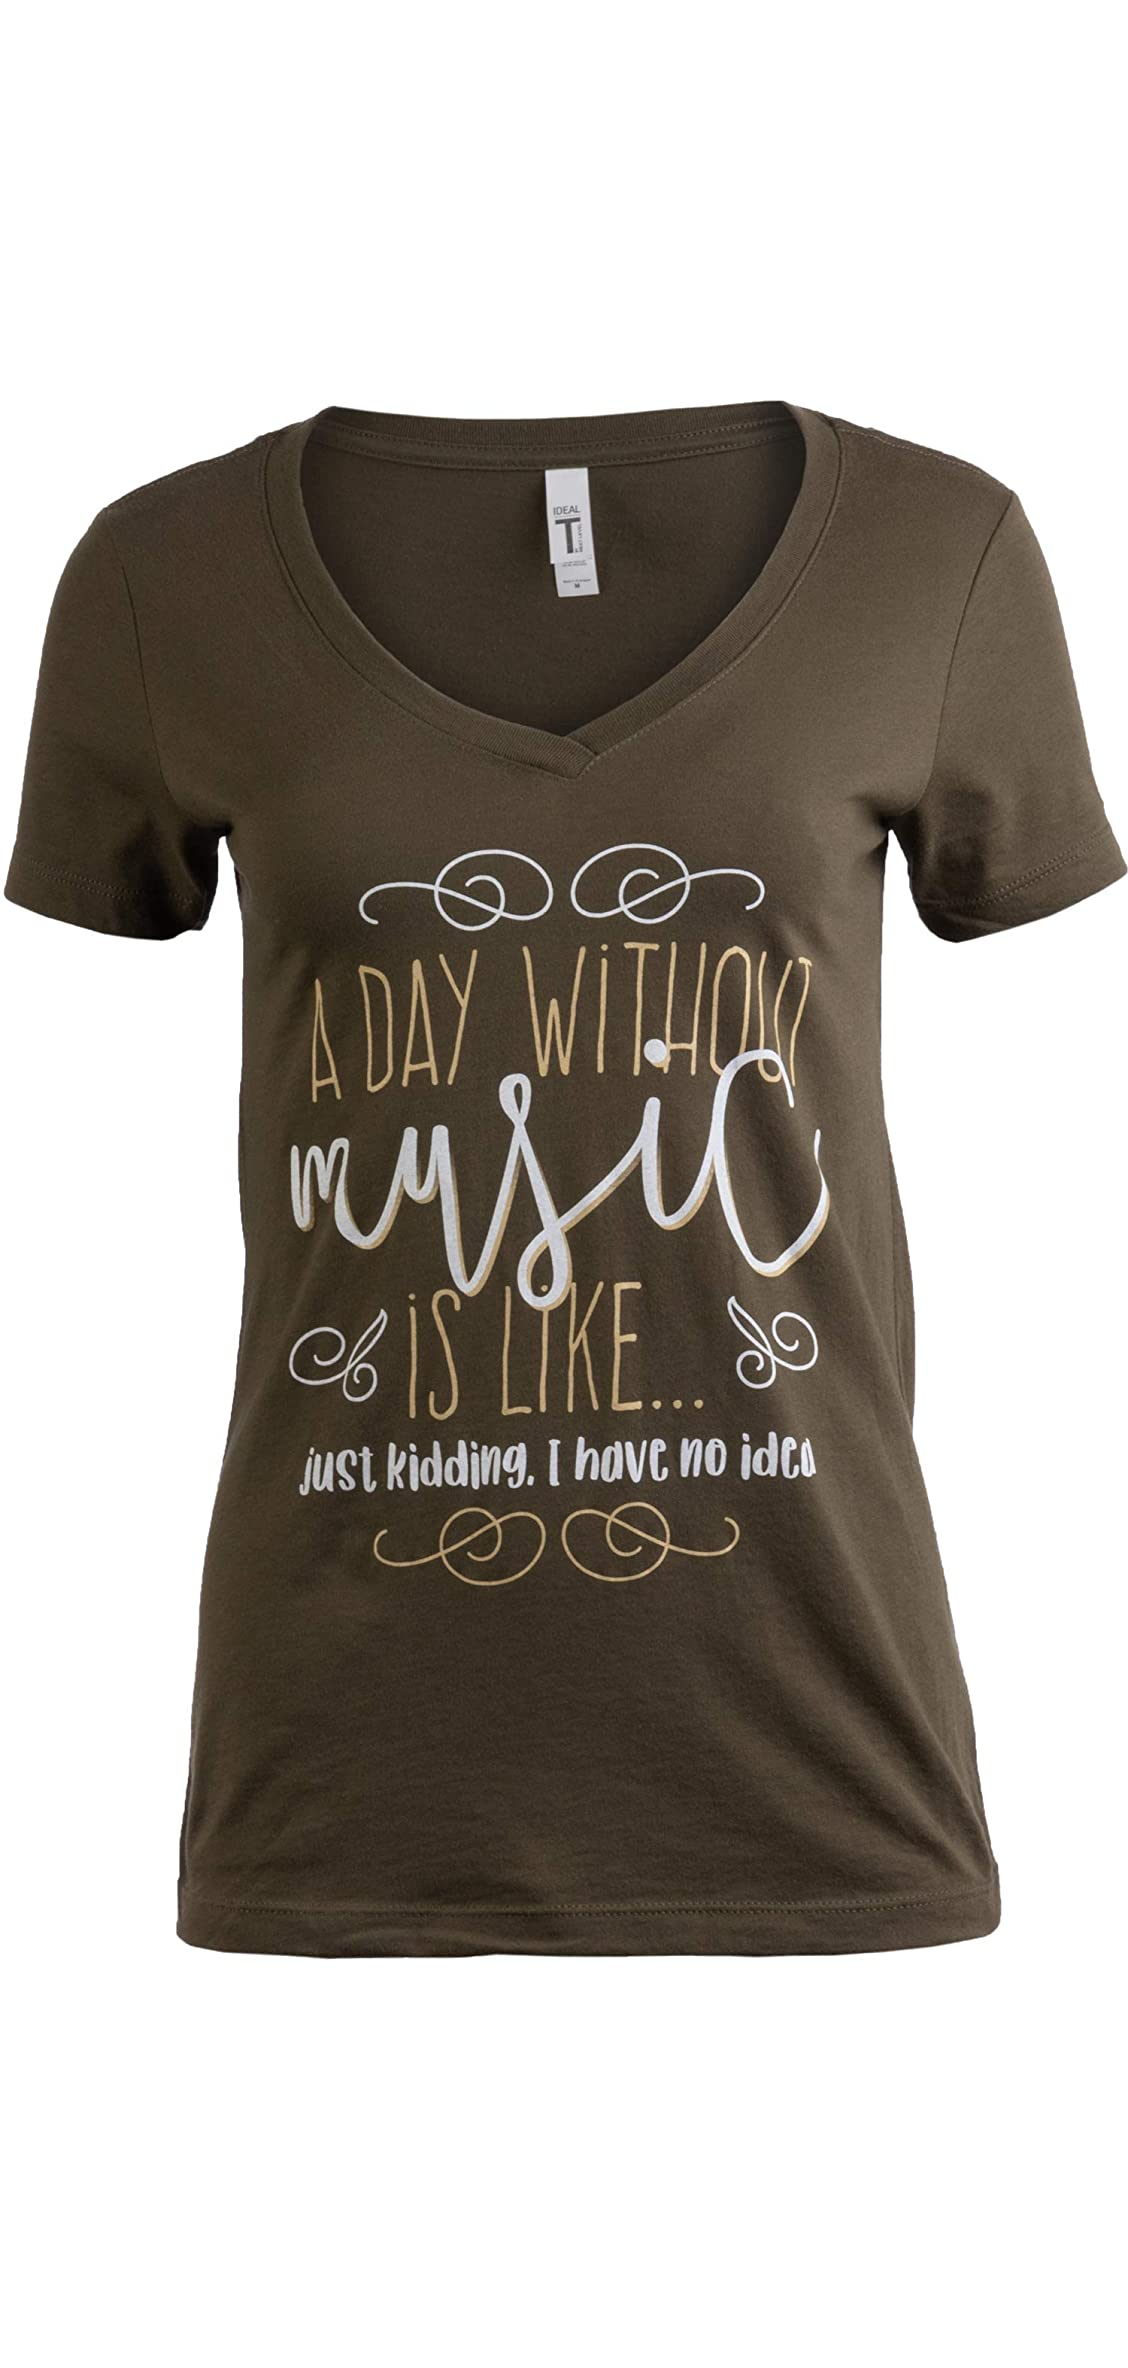 A Day Without Music Is Like I Have No Idea  Cute Teen Girl